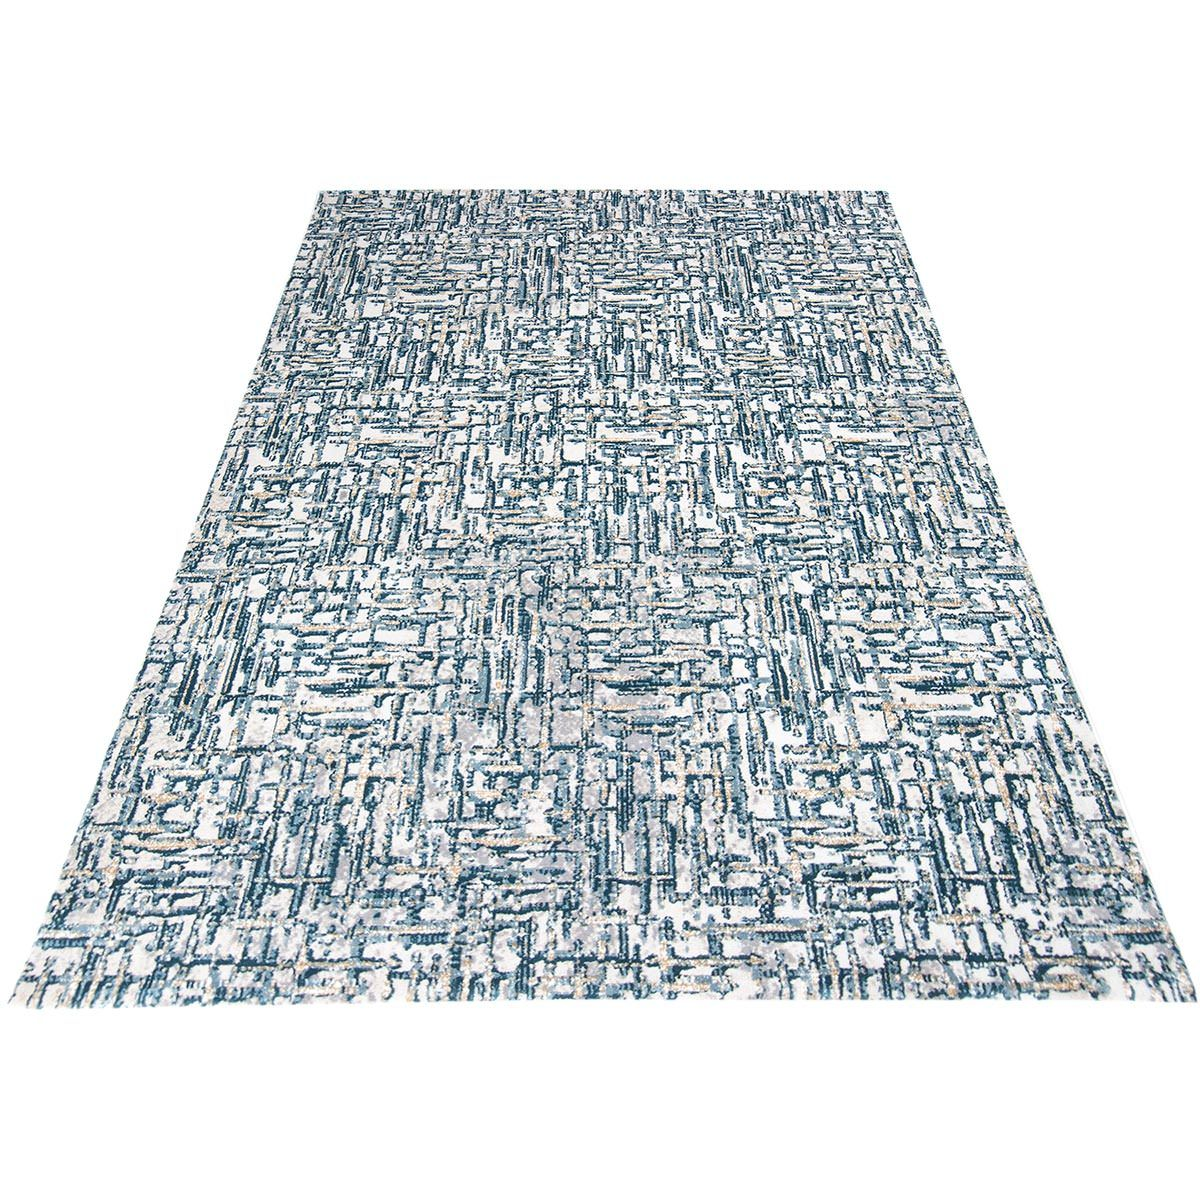 Madrid Rug 02 Blue 6